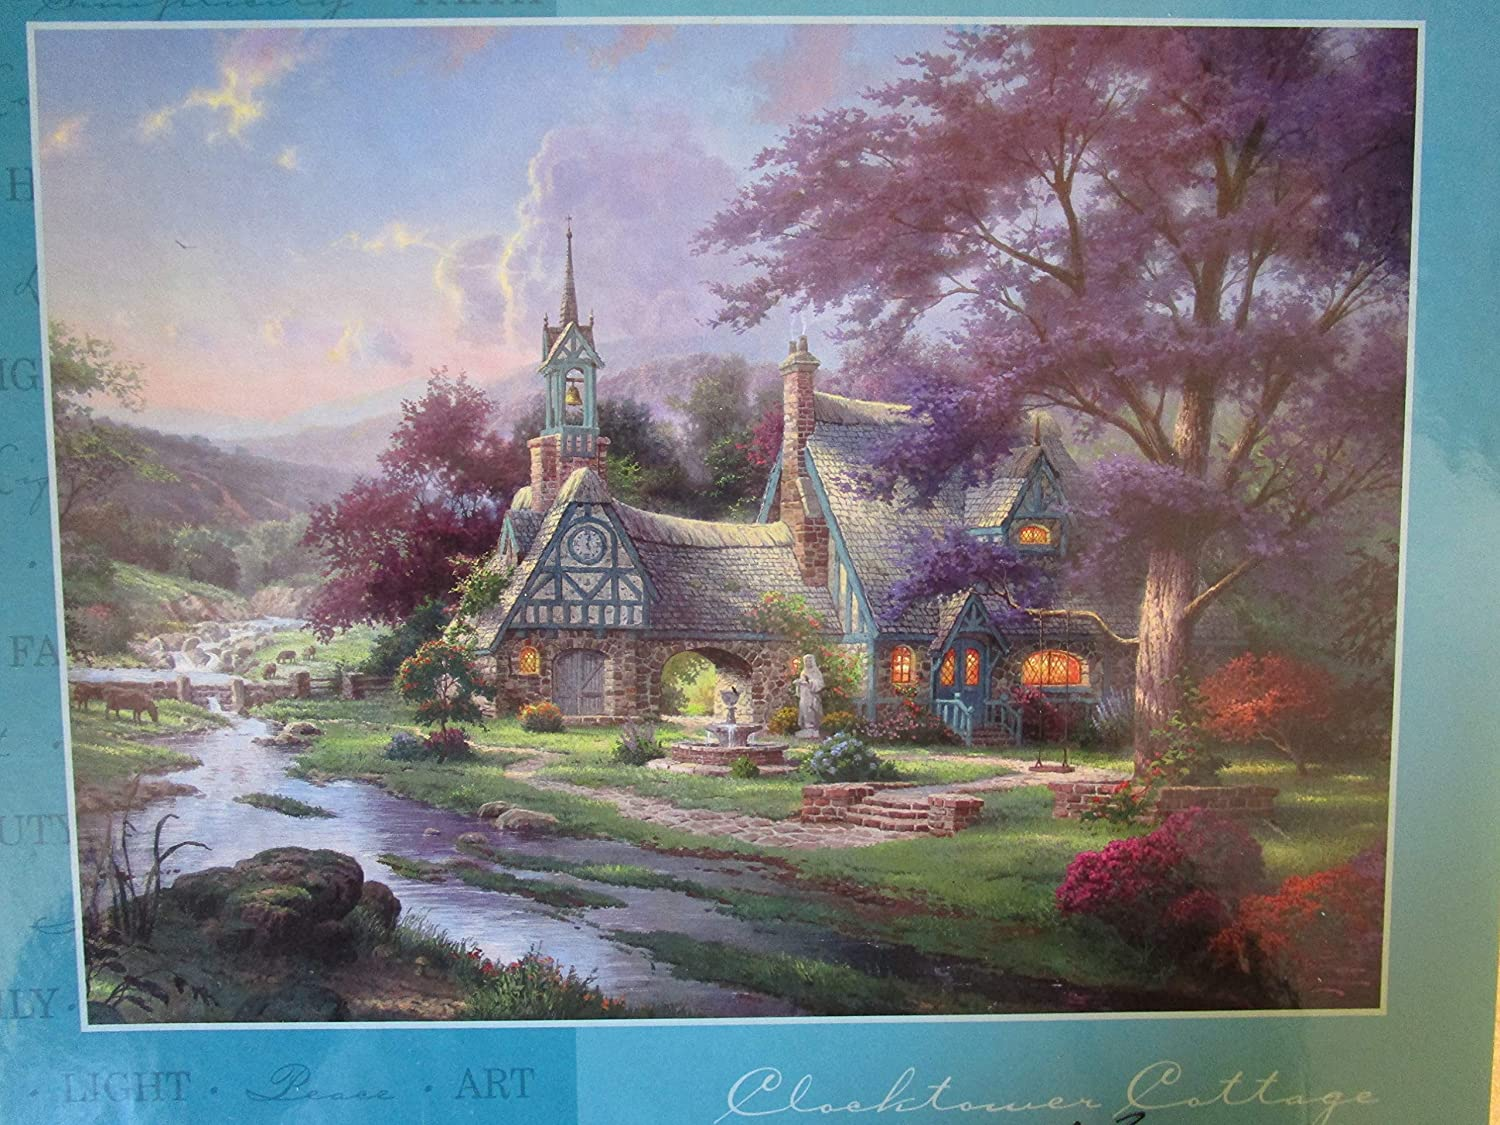 amazon com clocktower cottage thomas kinkade painter of light rh amazon com